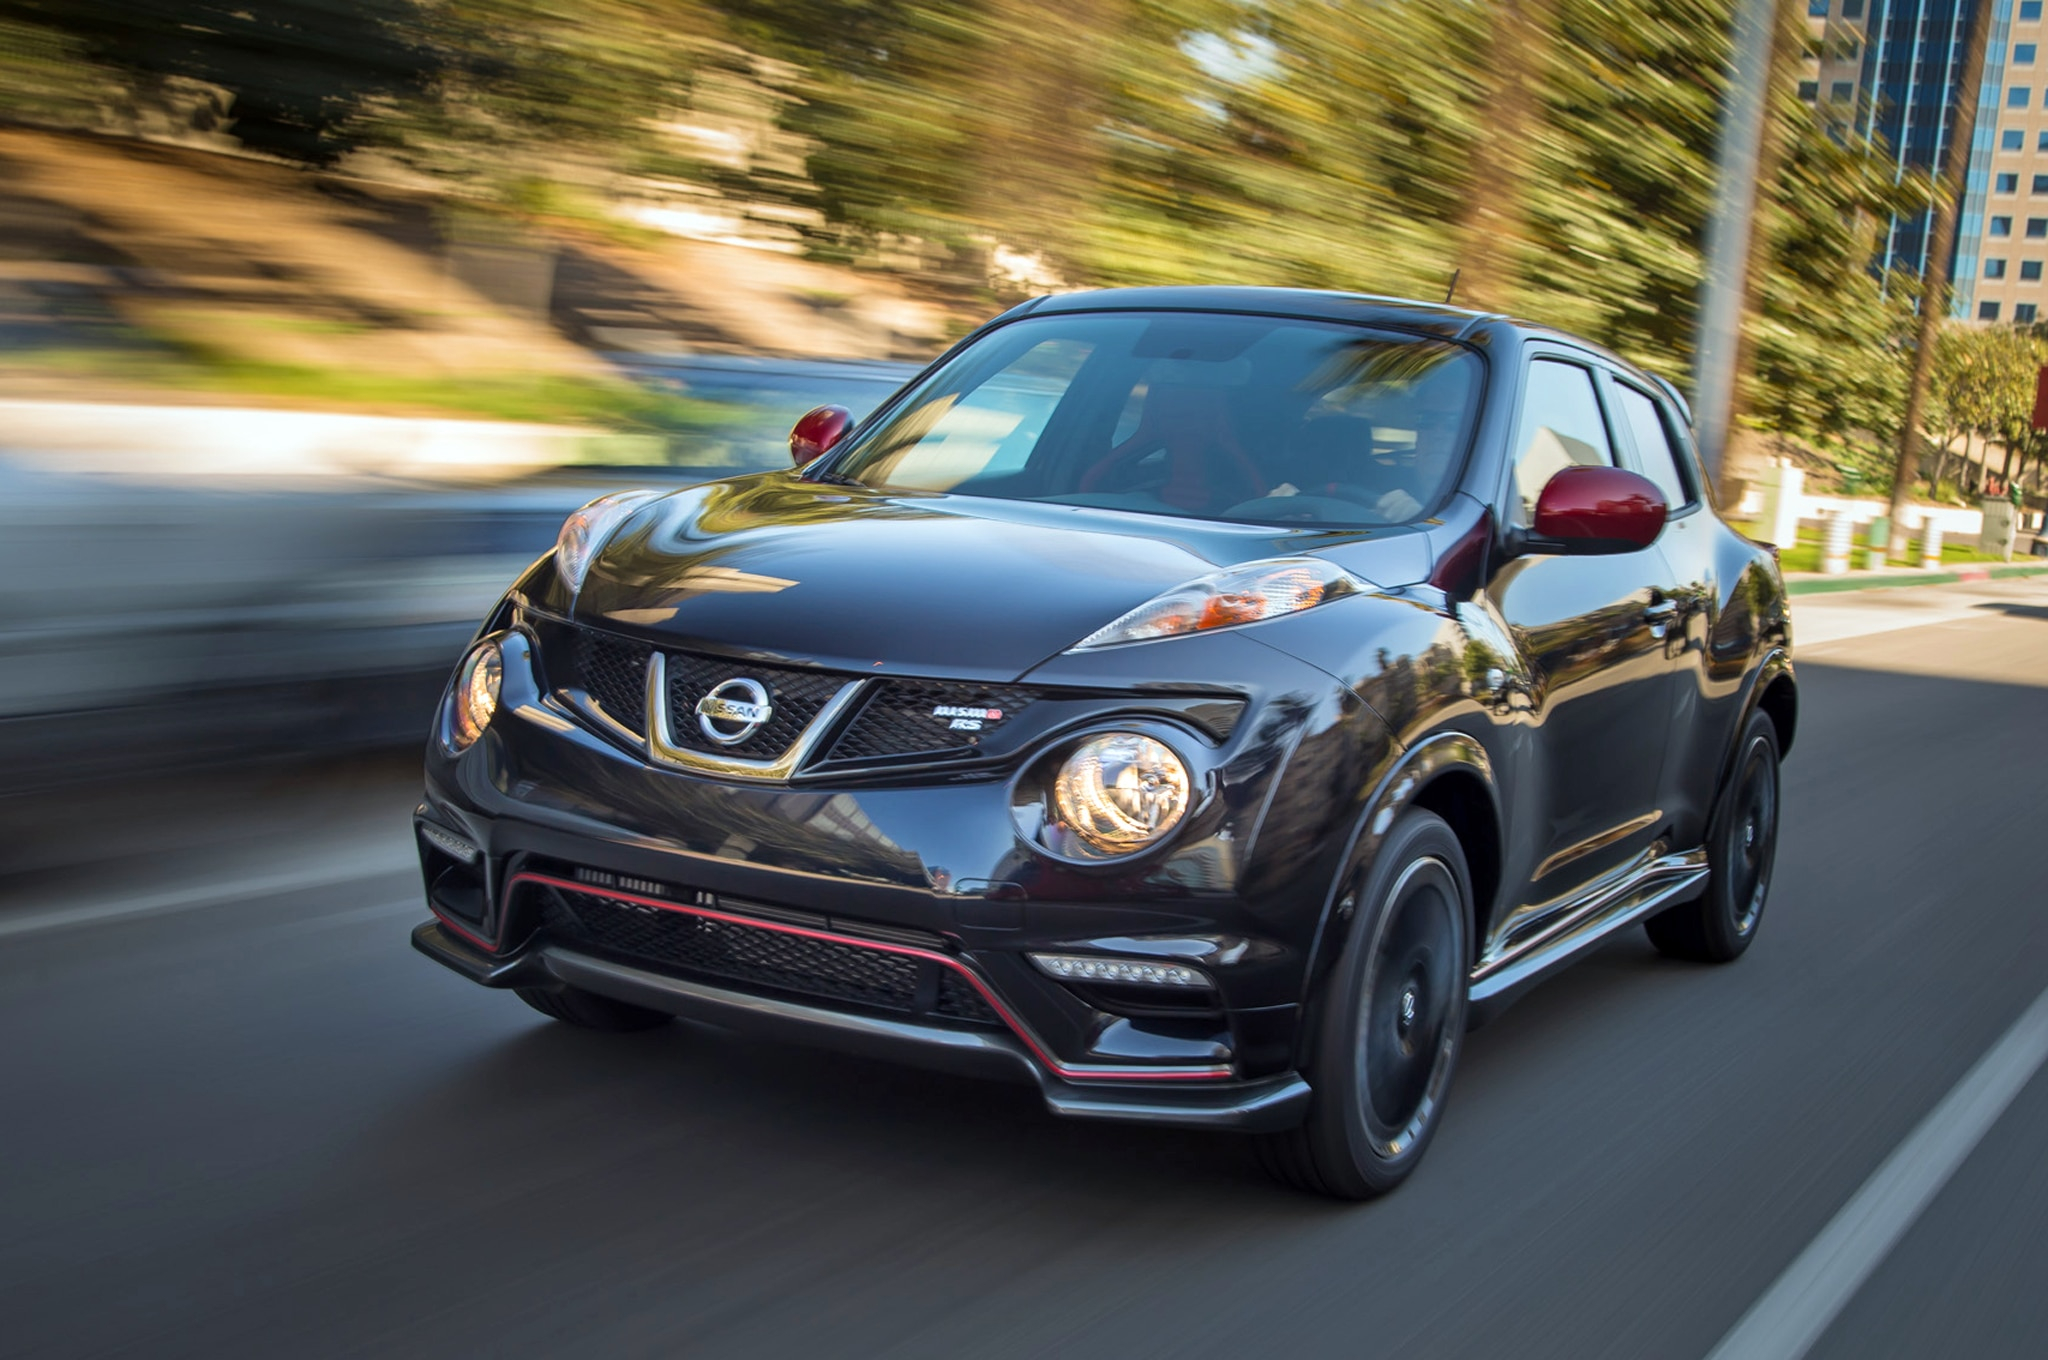 2014 Nissan Juke Nismo Rs Front View In Motion1